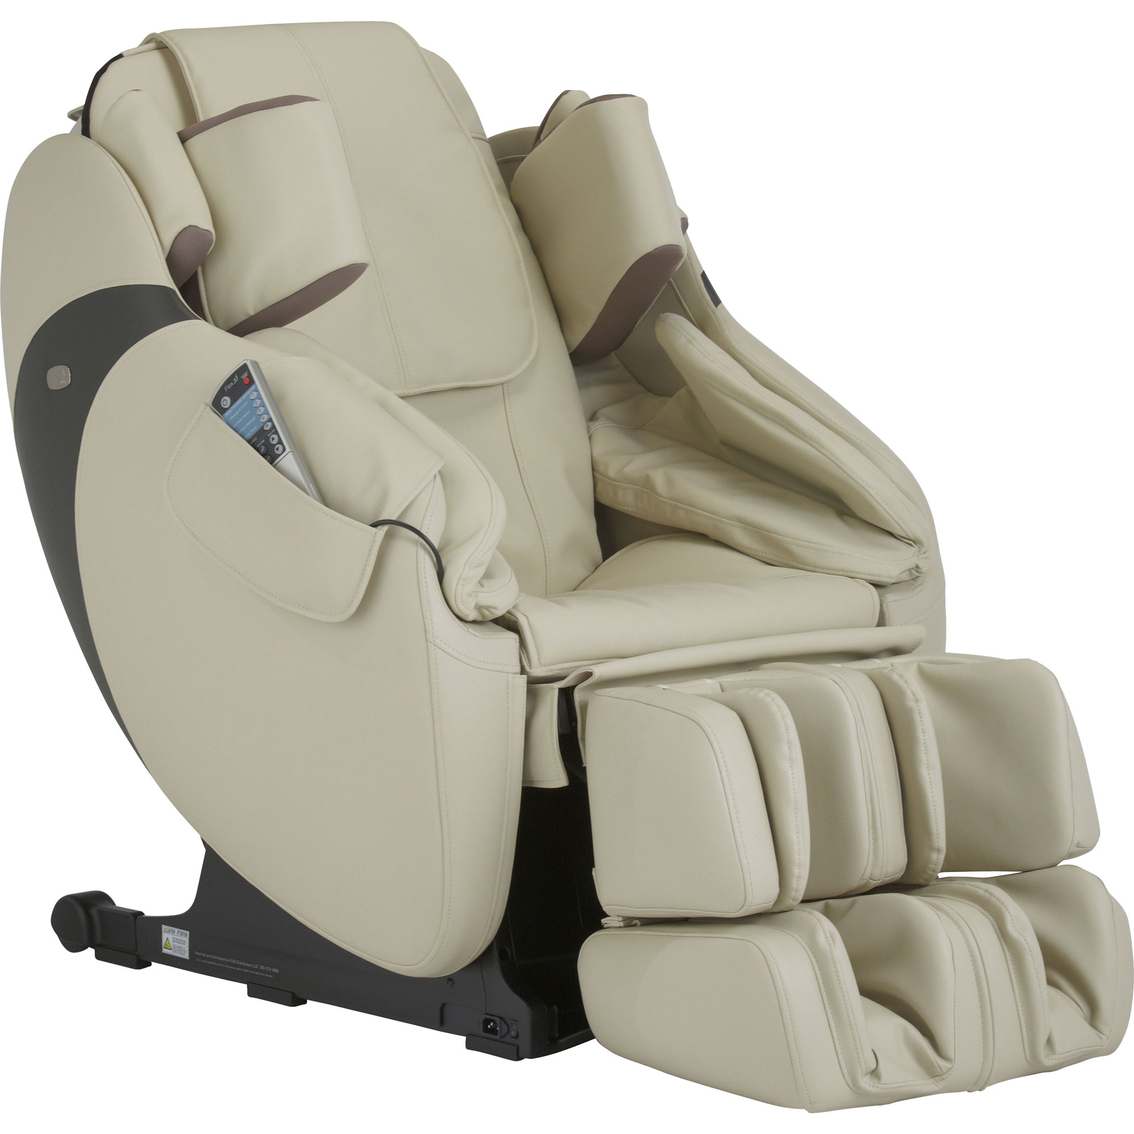 Inada Chair Inada Flex 3s Massage Chair Cream Chairs And Recliners